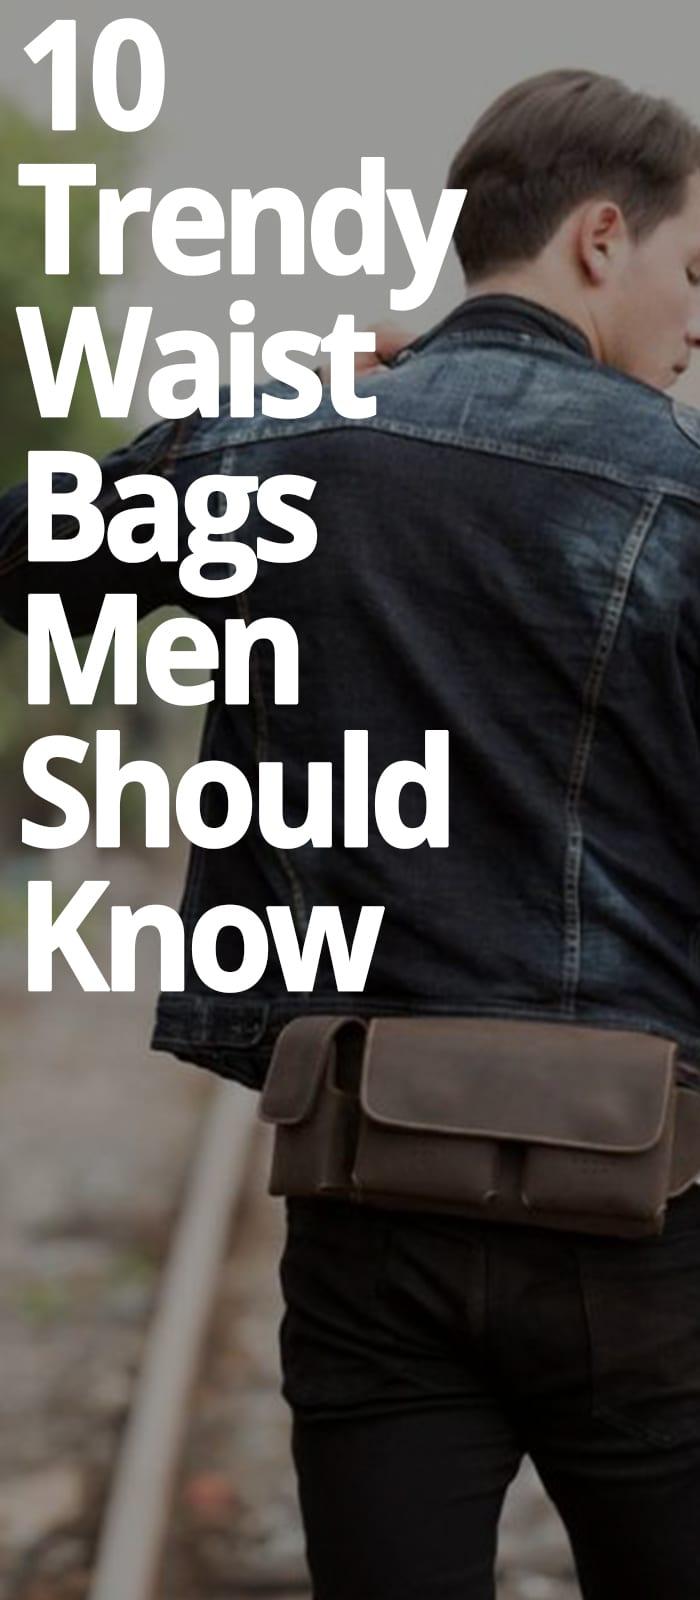 10 WAIST BAGS MEN SHOULD KNOW